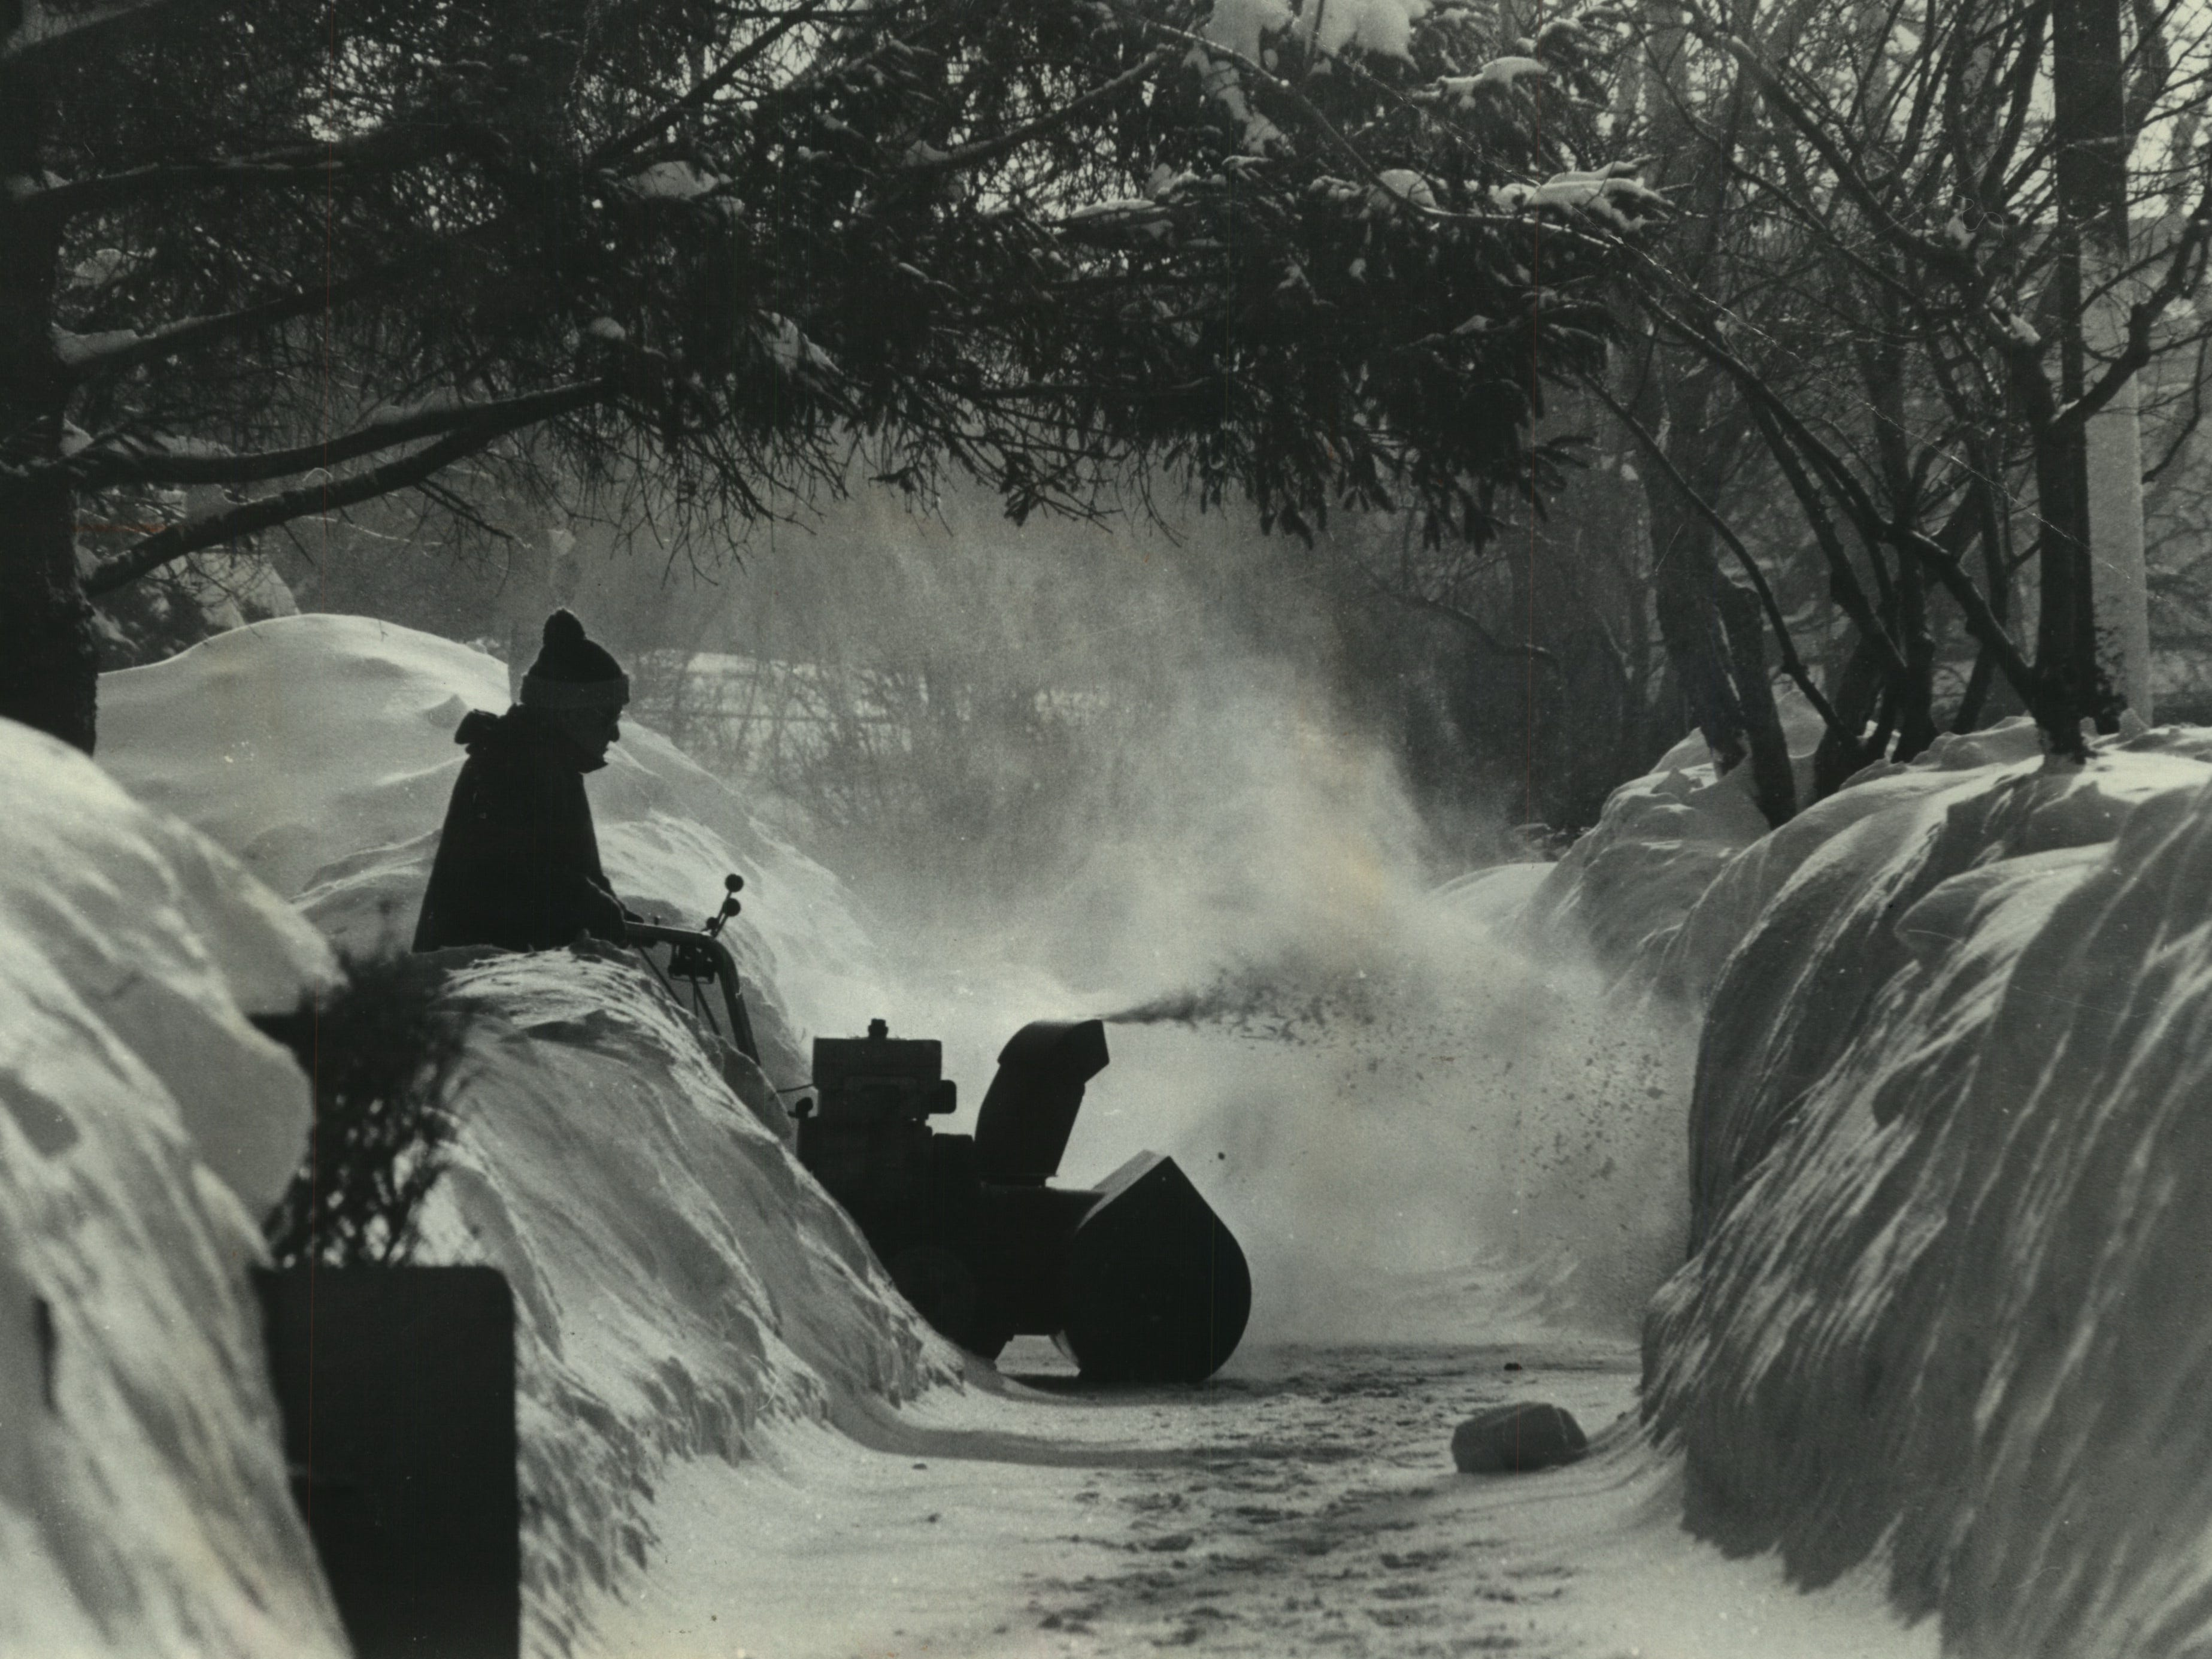 With snow already piled almost head high around him, Reuben J. Gothow uses a snowblower to clear new snow from the driveway of his home on Summit Avenue in Waukesha on Jan. 19, 1979. The new snow was on top of two 14-inch-plus snowstorms that had hit the Milwaukee area that month already. More was coming. This photo was published in the Jan. 19, 1979, Milwaukee Journal.